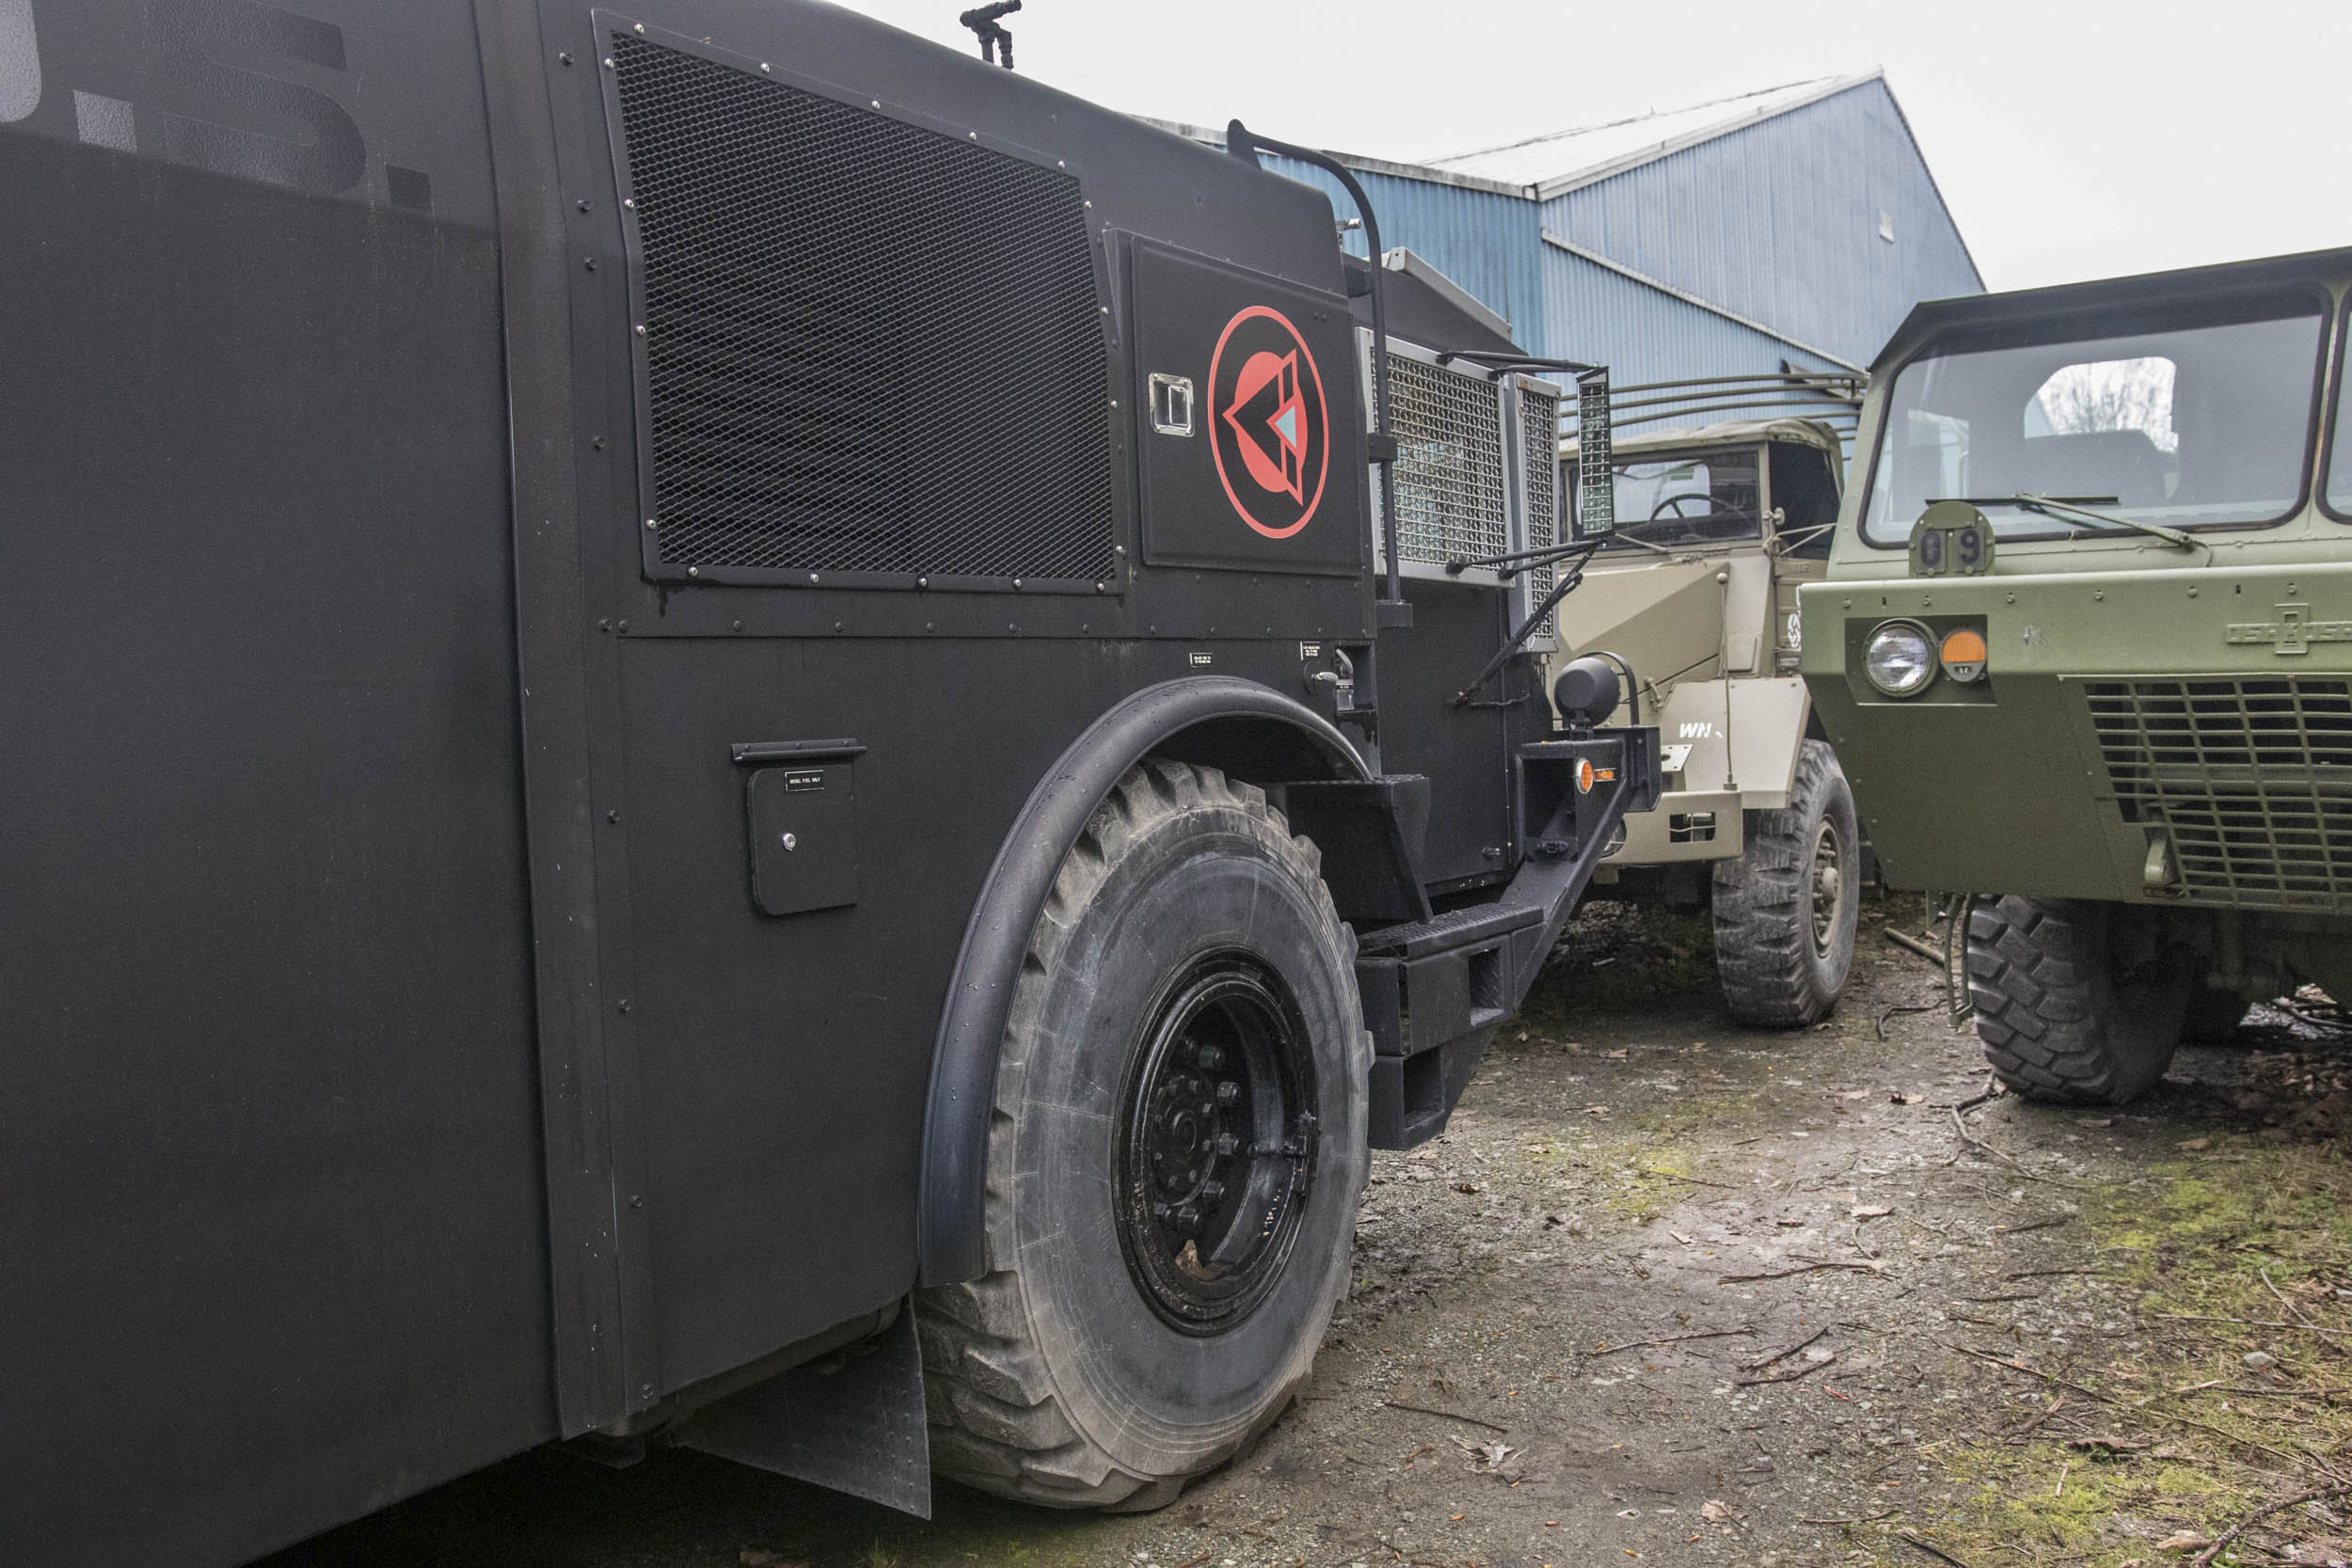 From left to right, a riot-control vehicle built for Canadian security forces at the G8 summit; a cargo truck from The Man in the High Castle, dressed up to look like a German military vehicle; and an Oshkosh high-mobility heavy hauler.